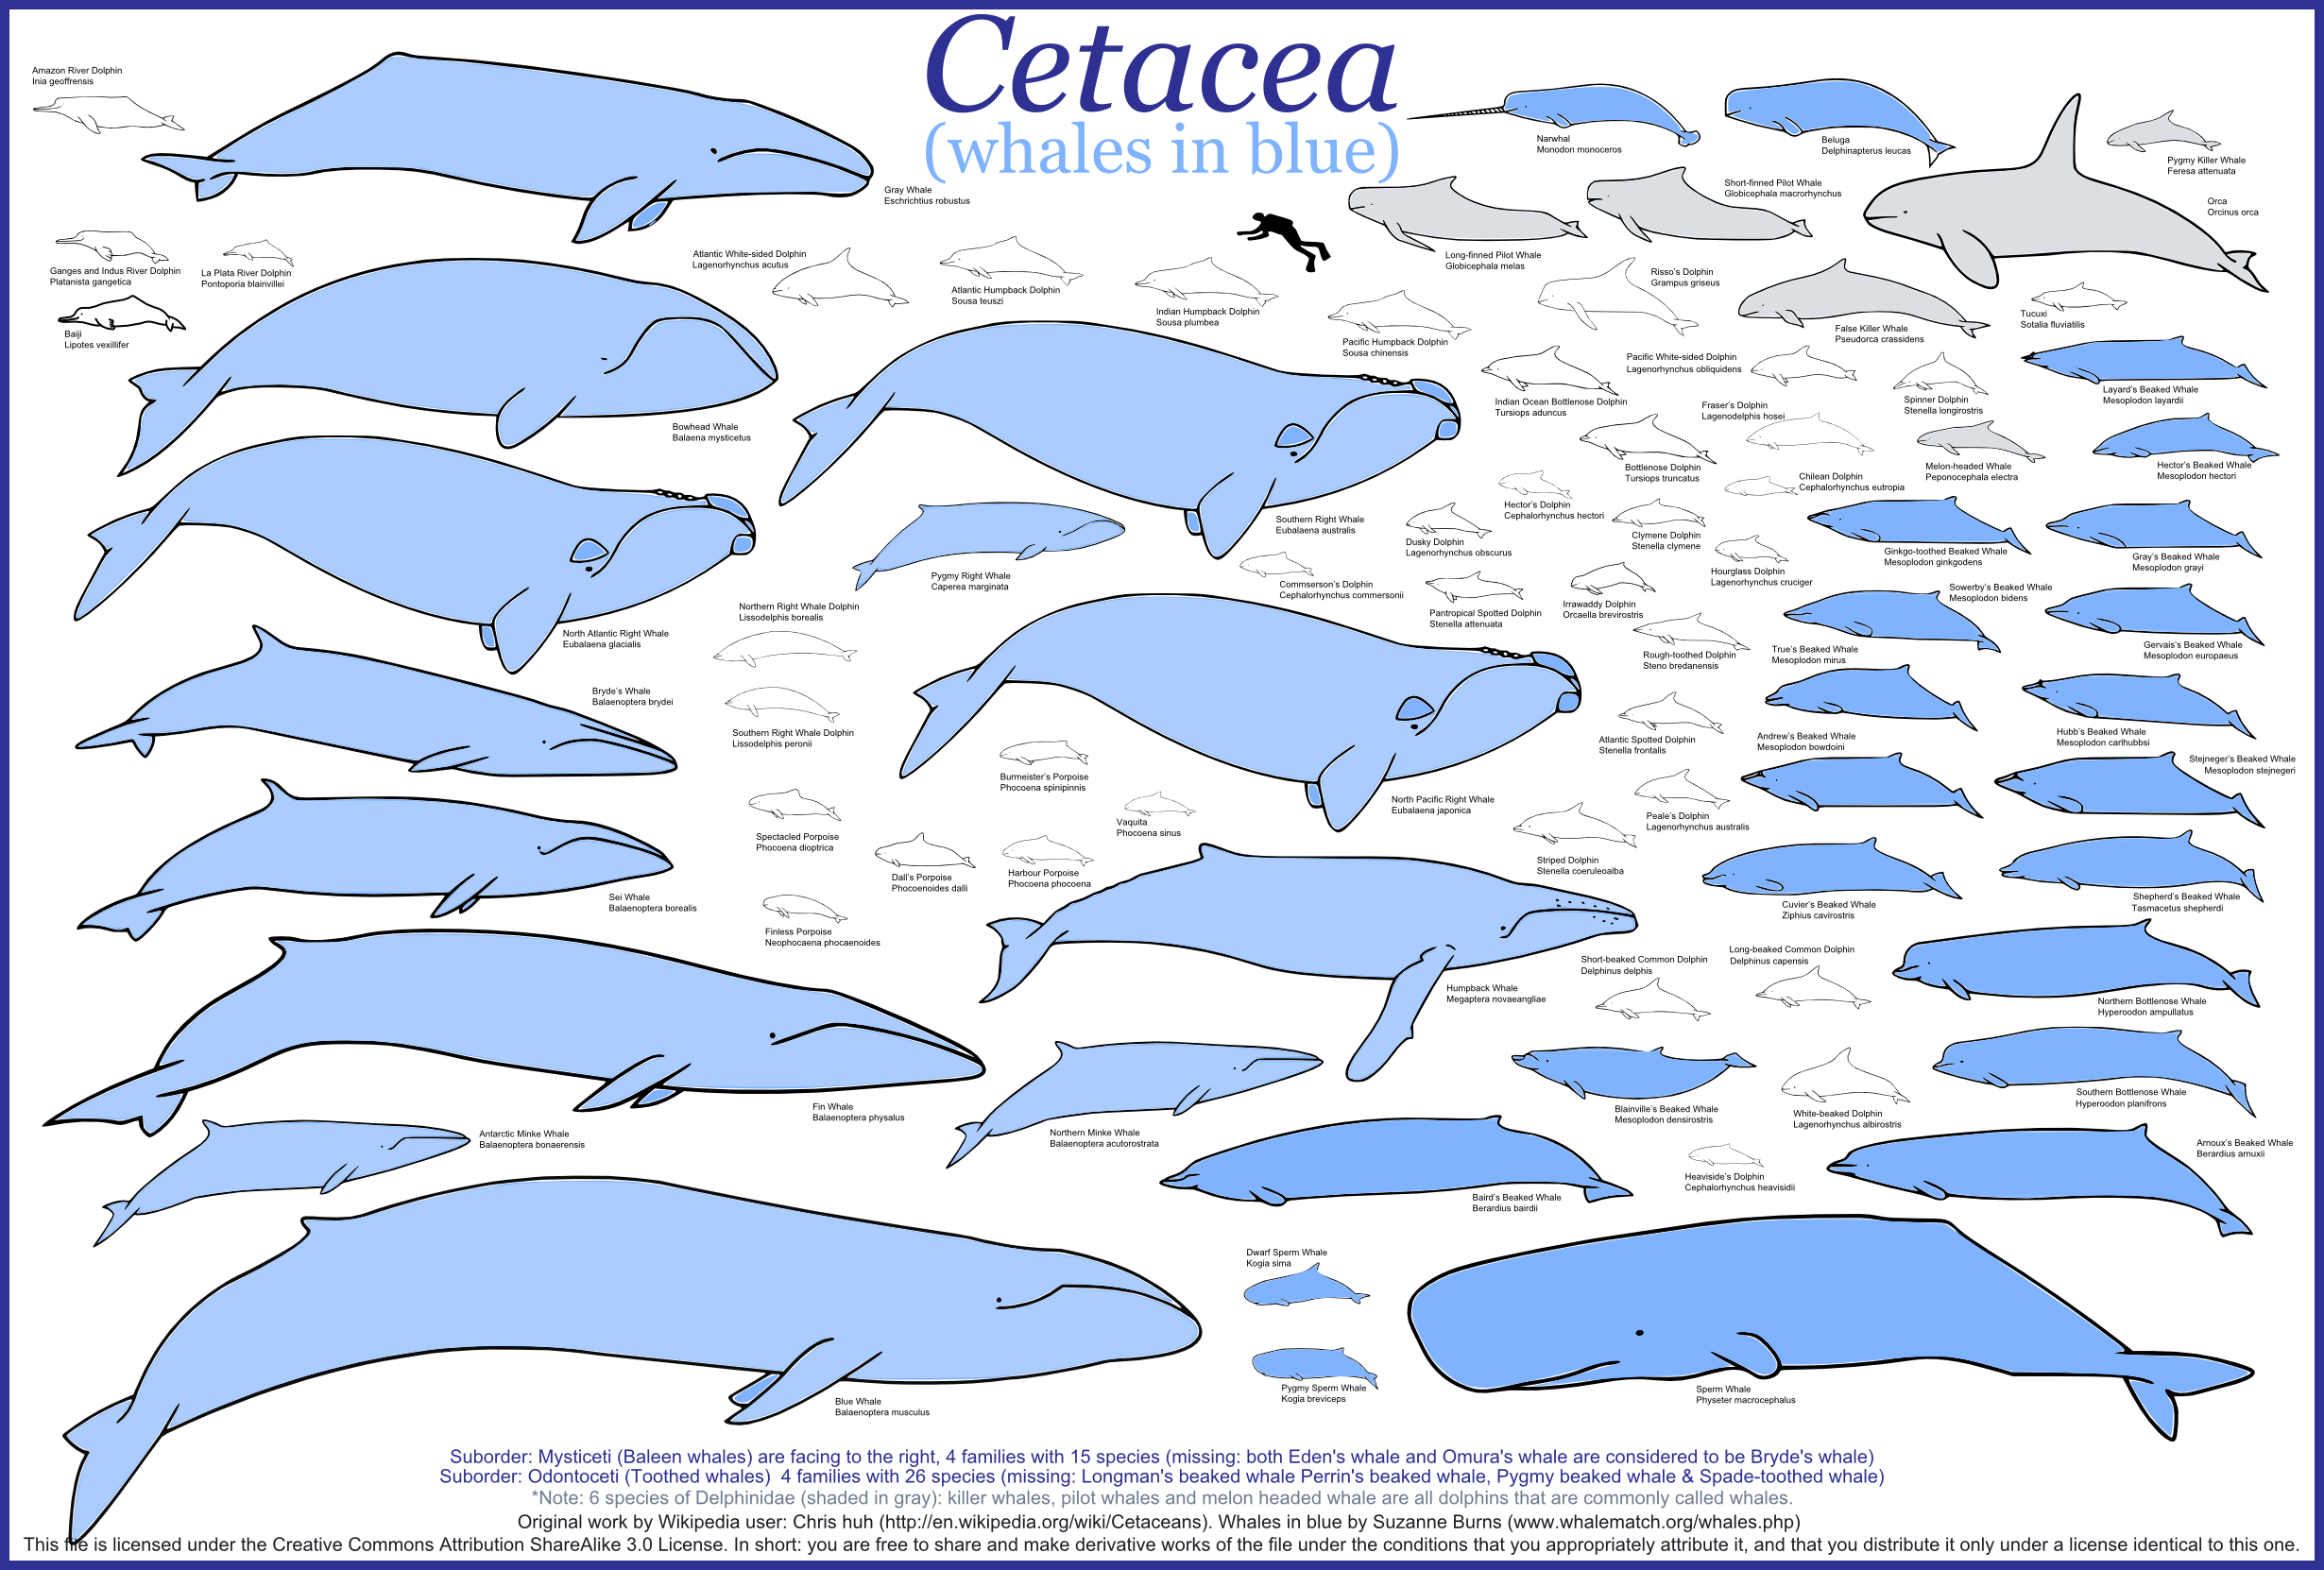 Blue+whale+size+comparison+chart